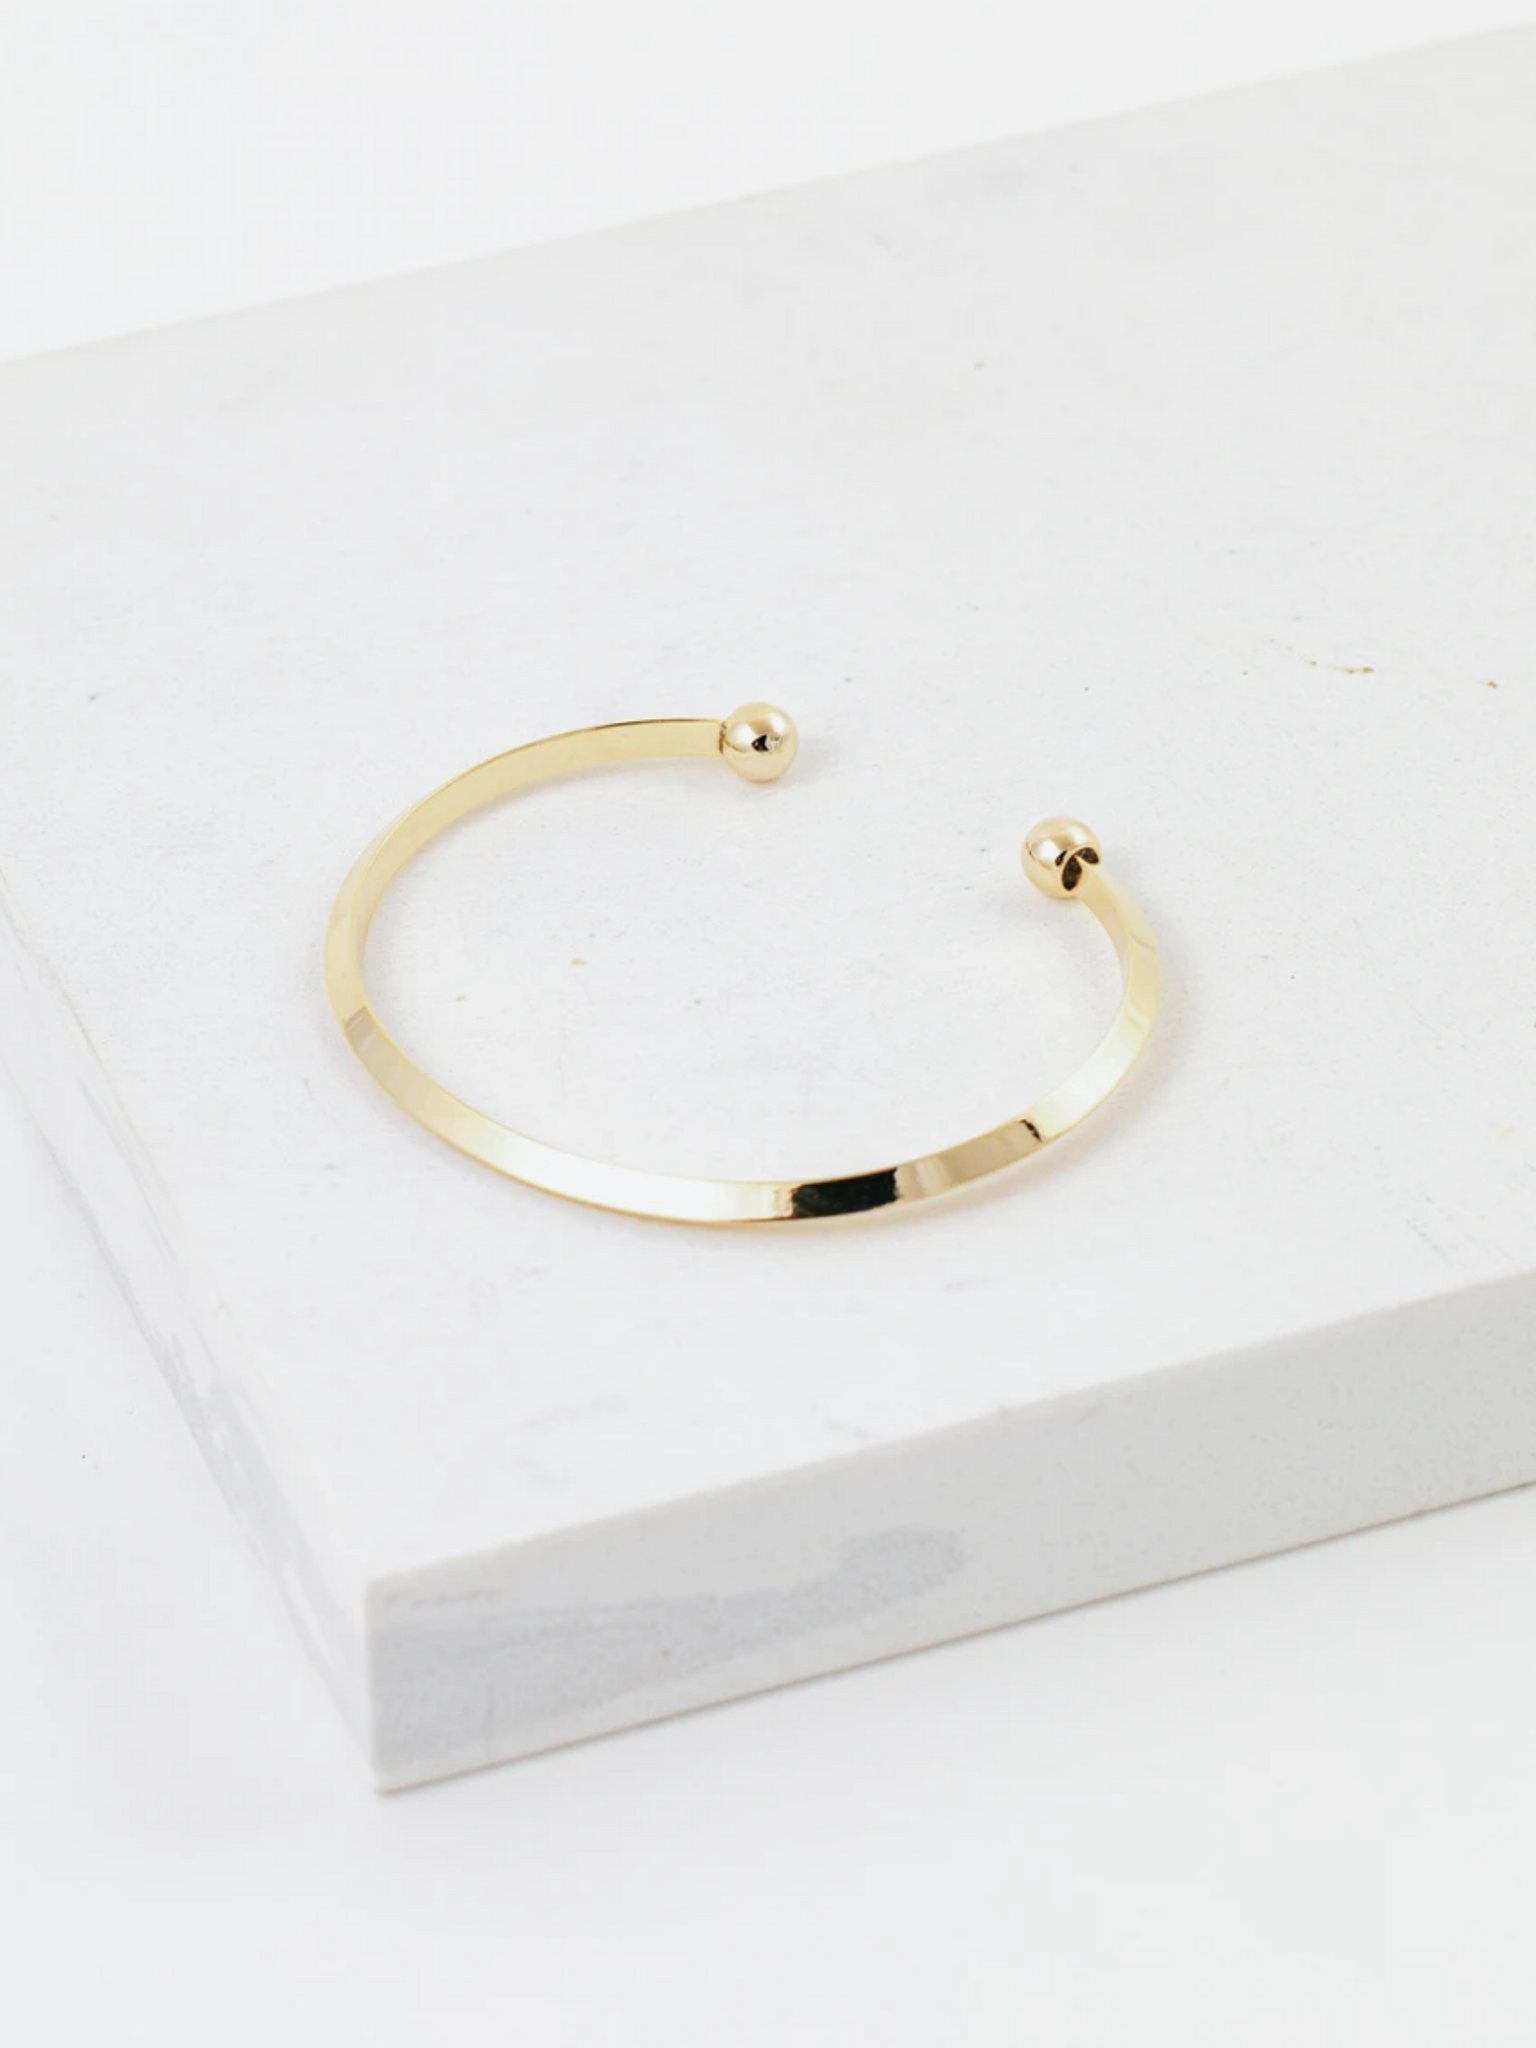 Lover's Tempo Hemisphere Bangle